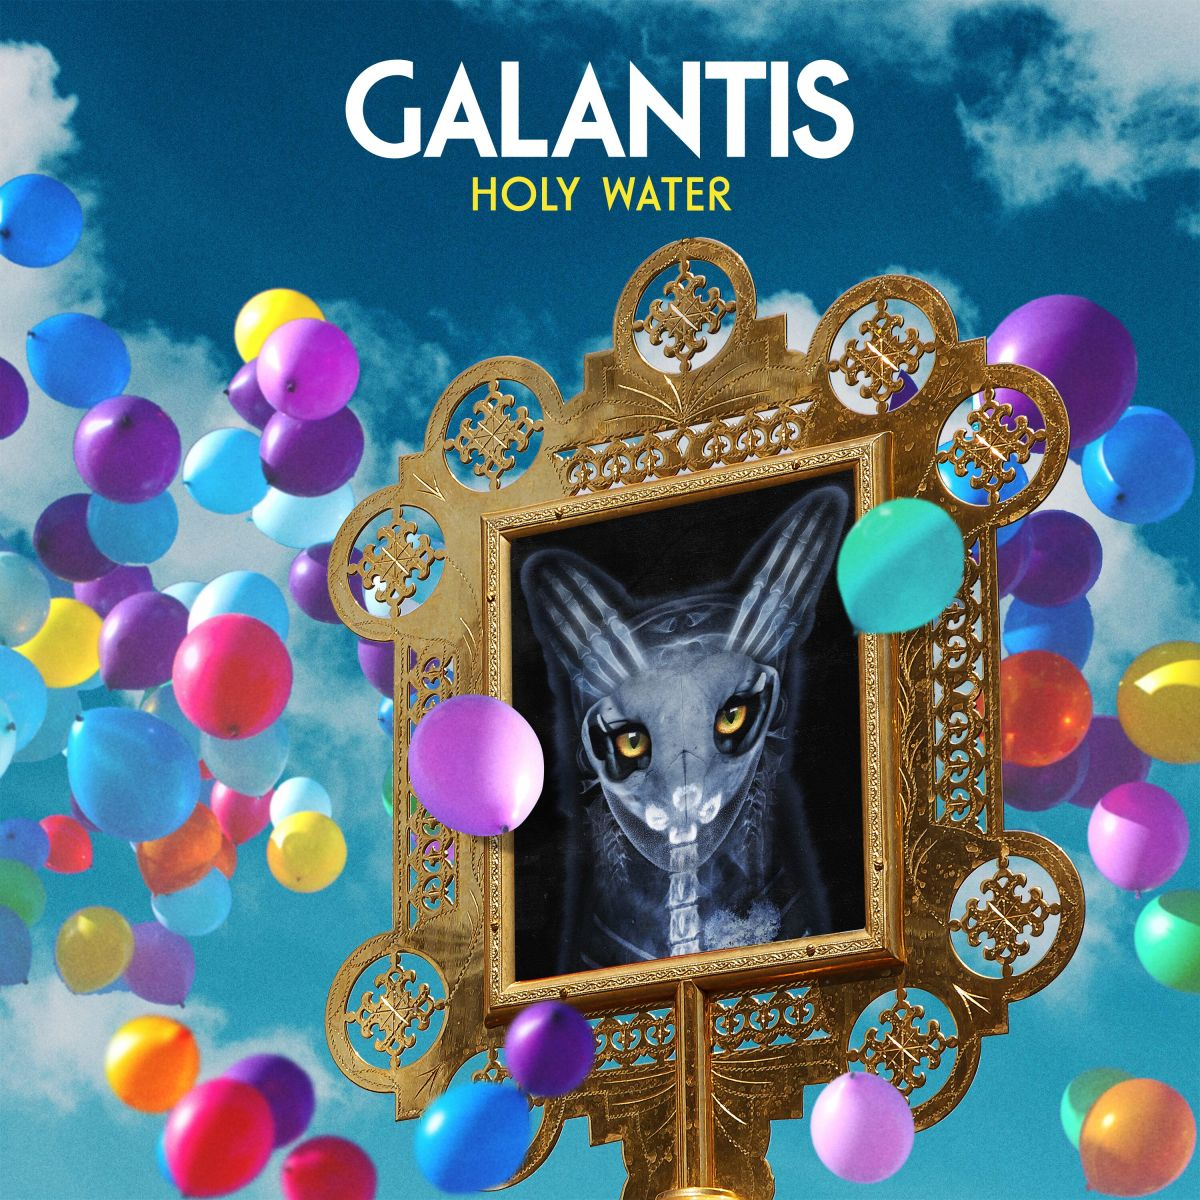 Galantis Holy Water Album Art